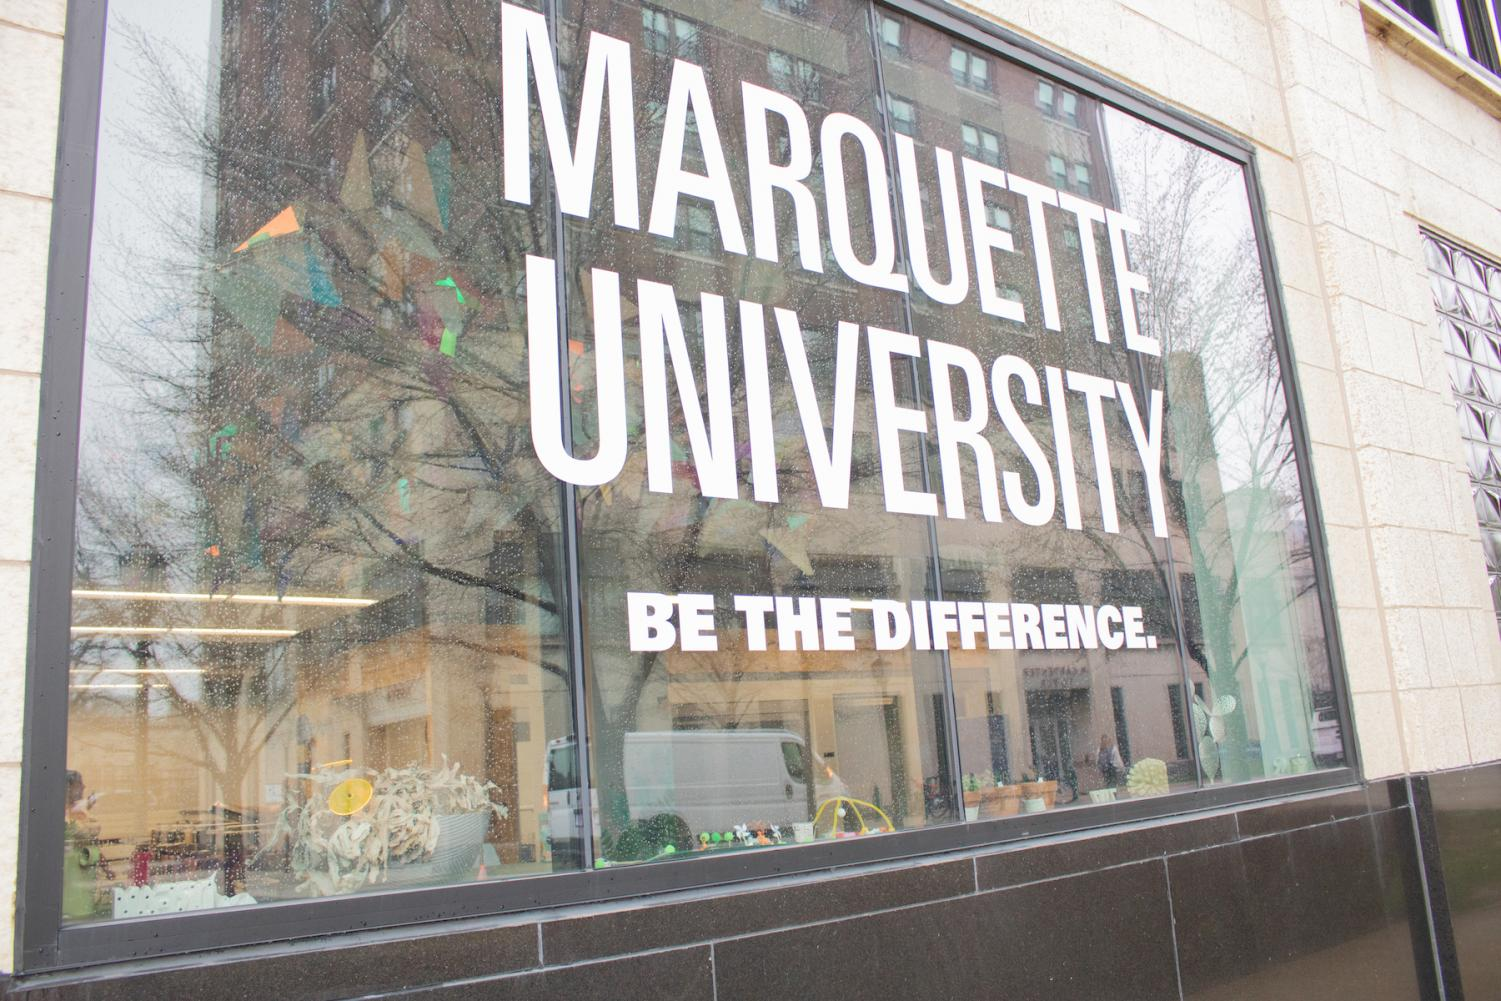 The Explorer Challenge has had a hand in notable Marquette programs and initiatives, such as the creation of the 707 Hub.